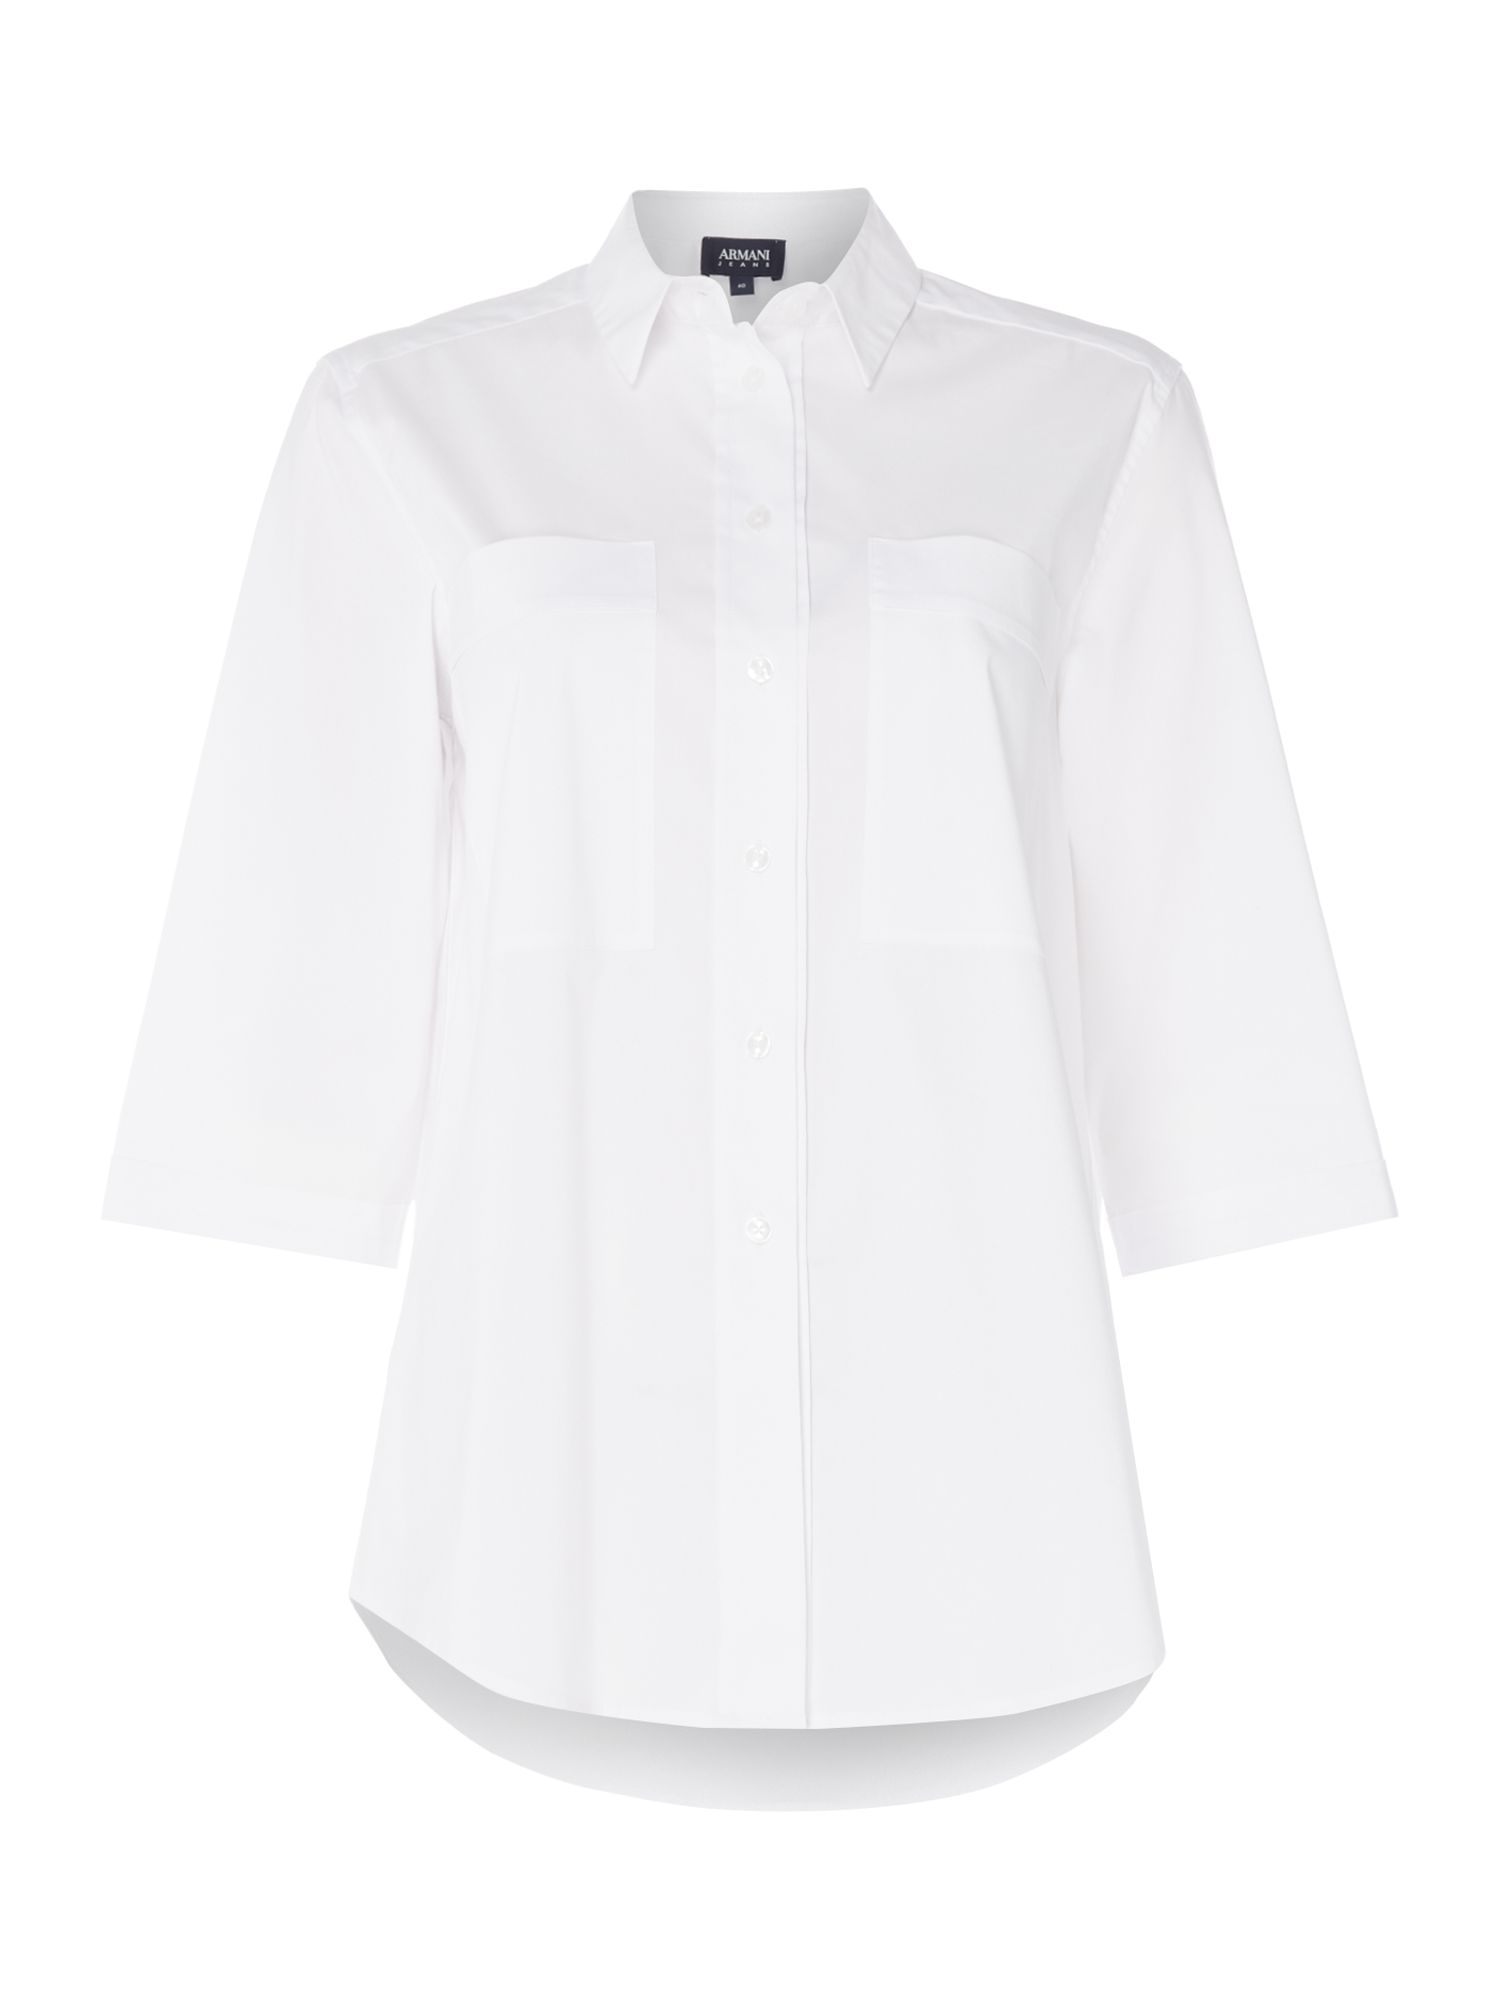 Armani Jeans 2 pocket shirt in 1100 white, White